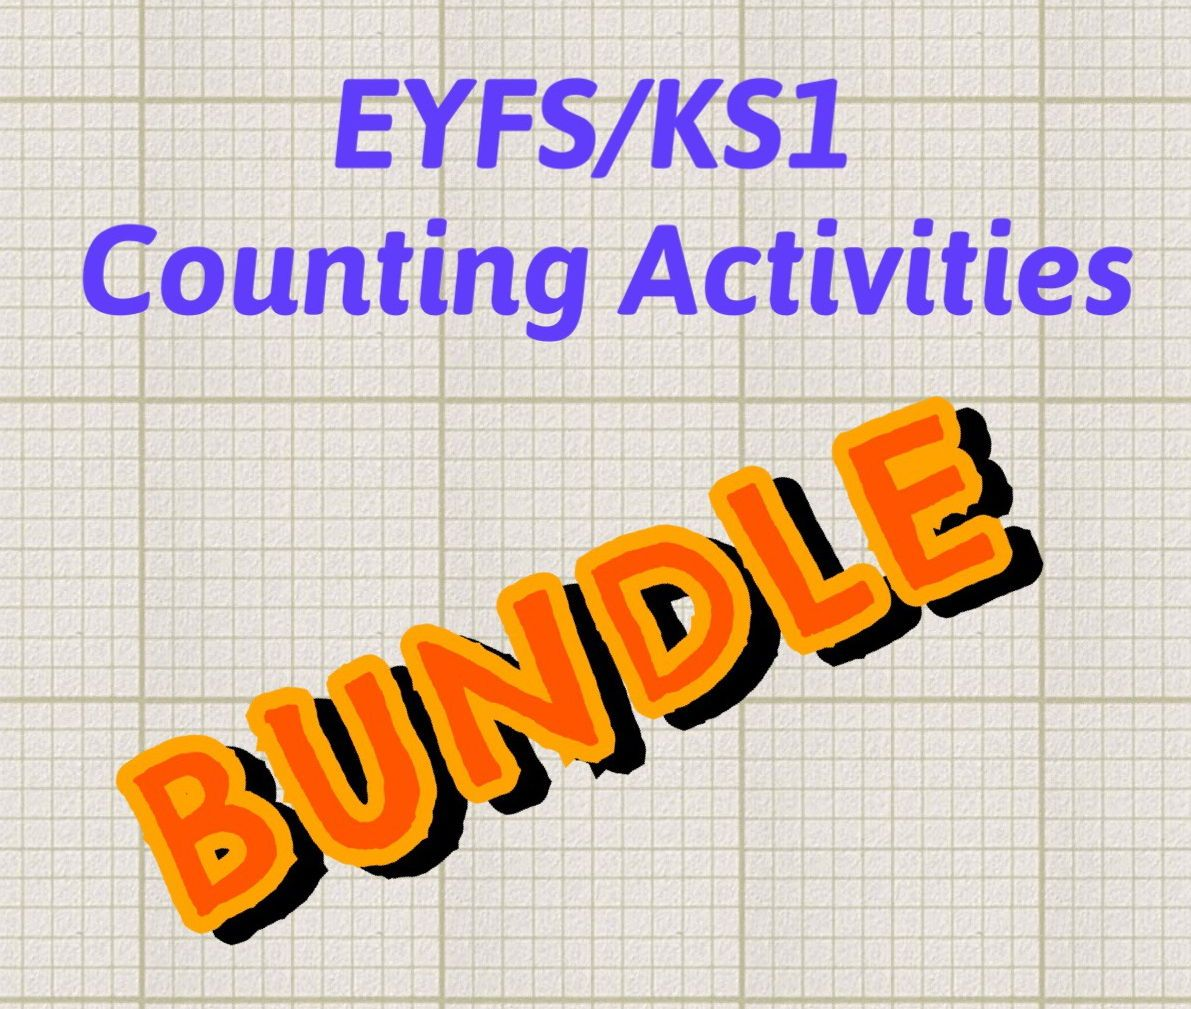 Counting Activities Bundle For Eyfs Ks1